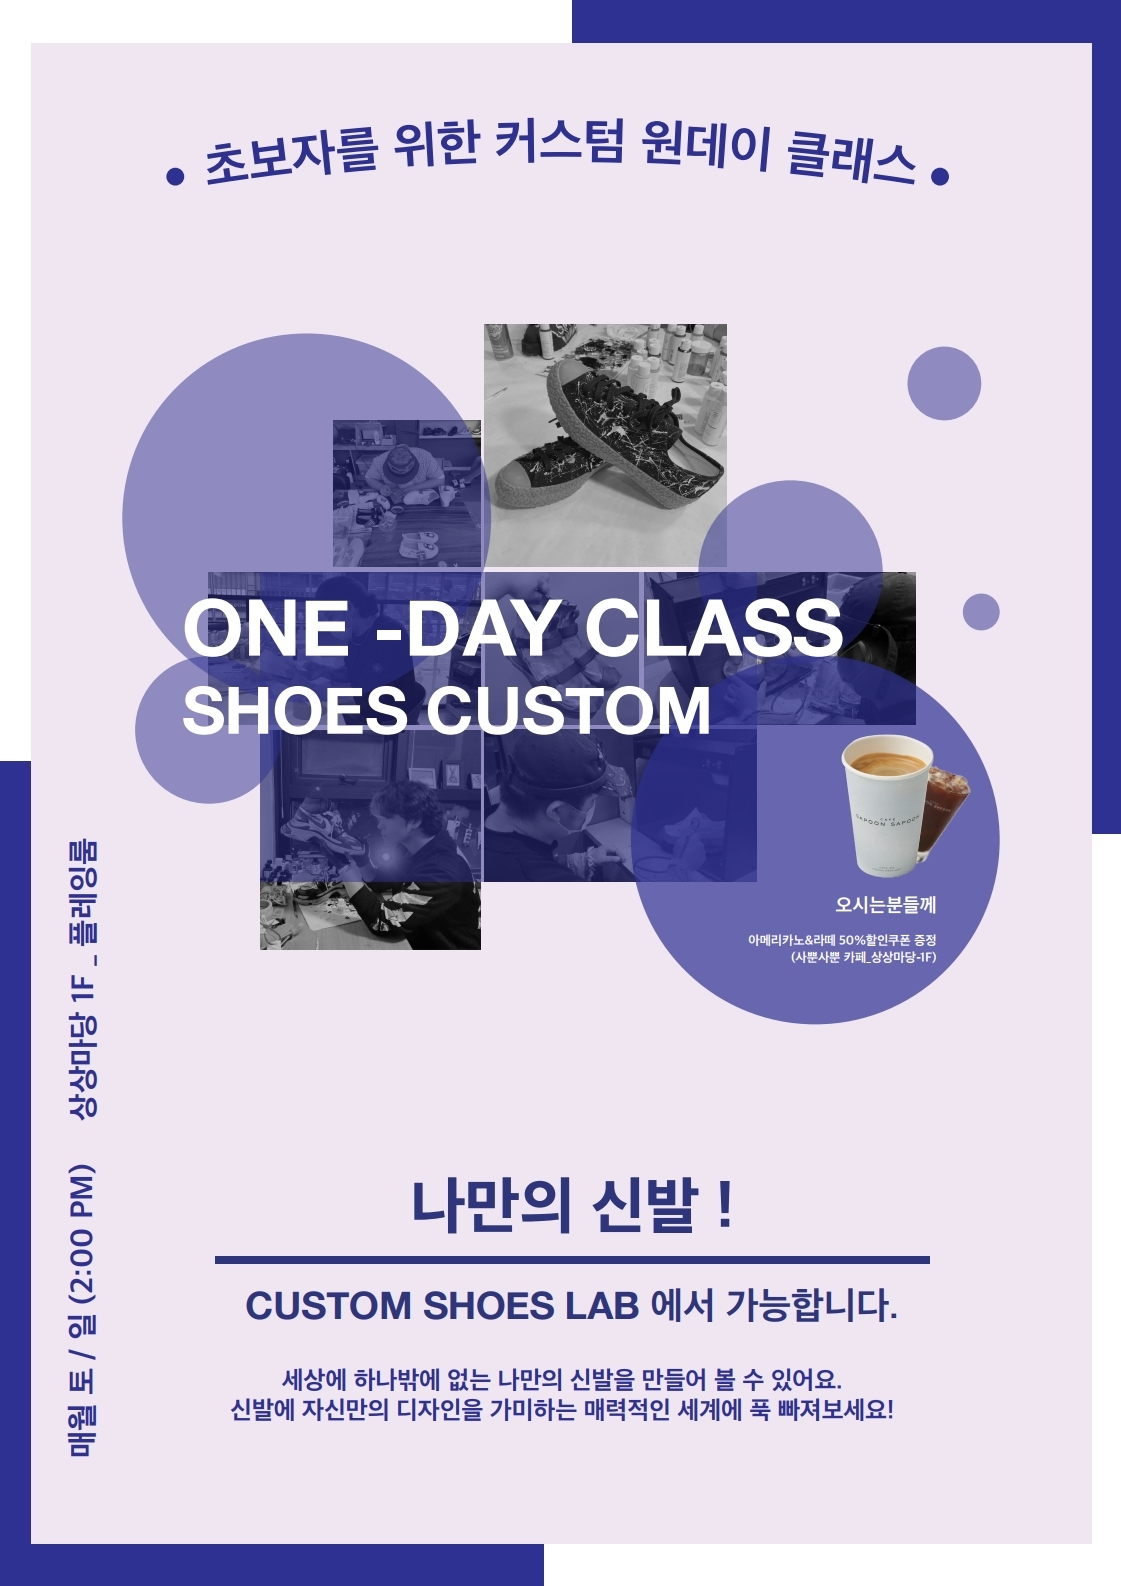 ONE-DAY CLASS SHOES CUSTOM